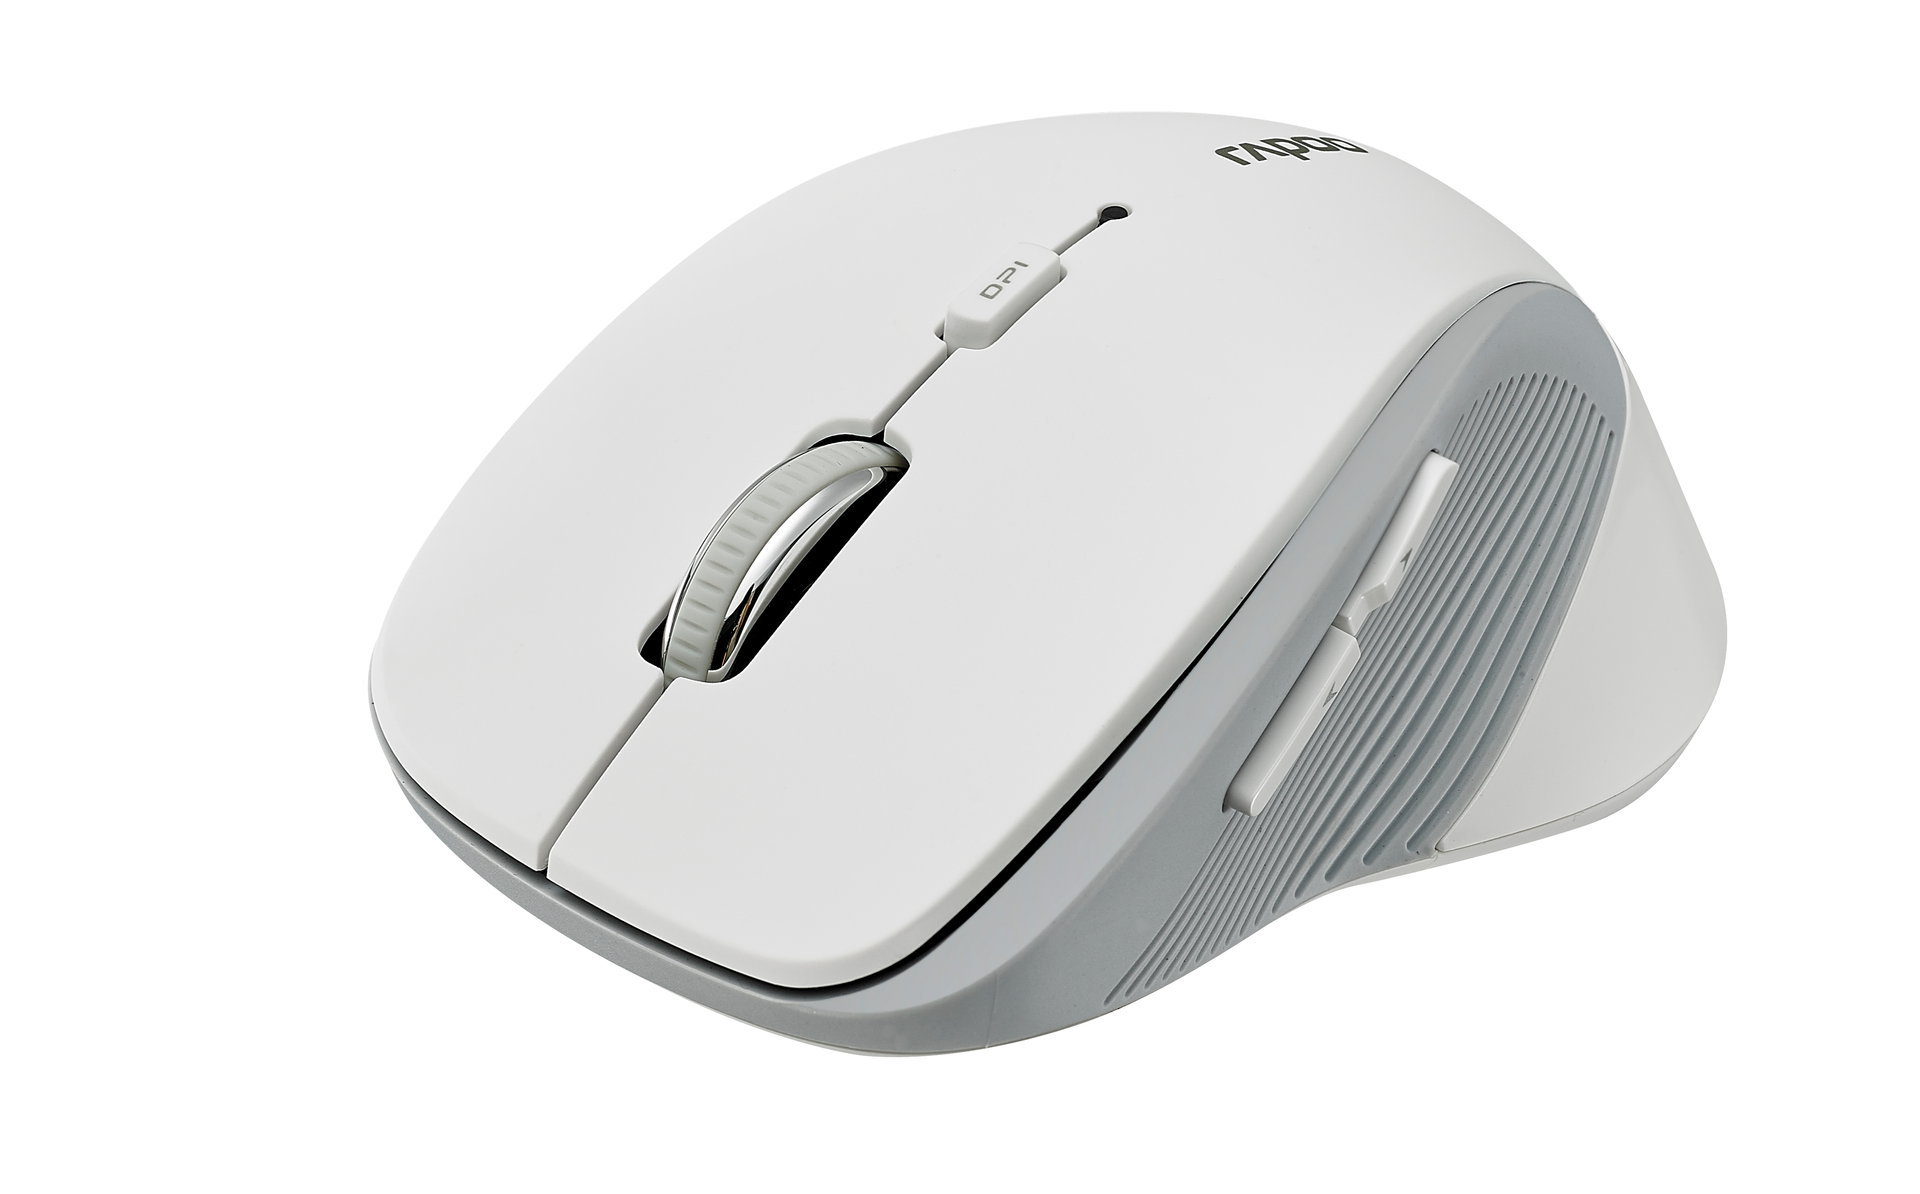 Rapoo 3910 Wireless Laser Mouse White